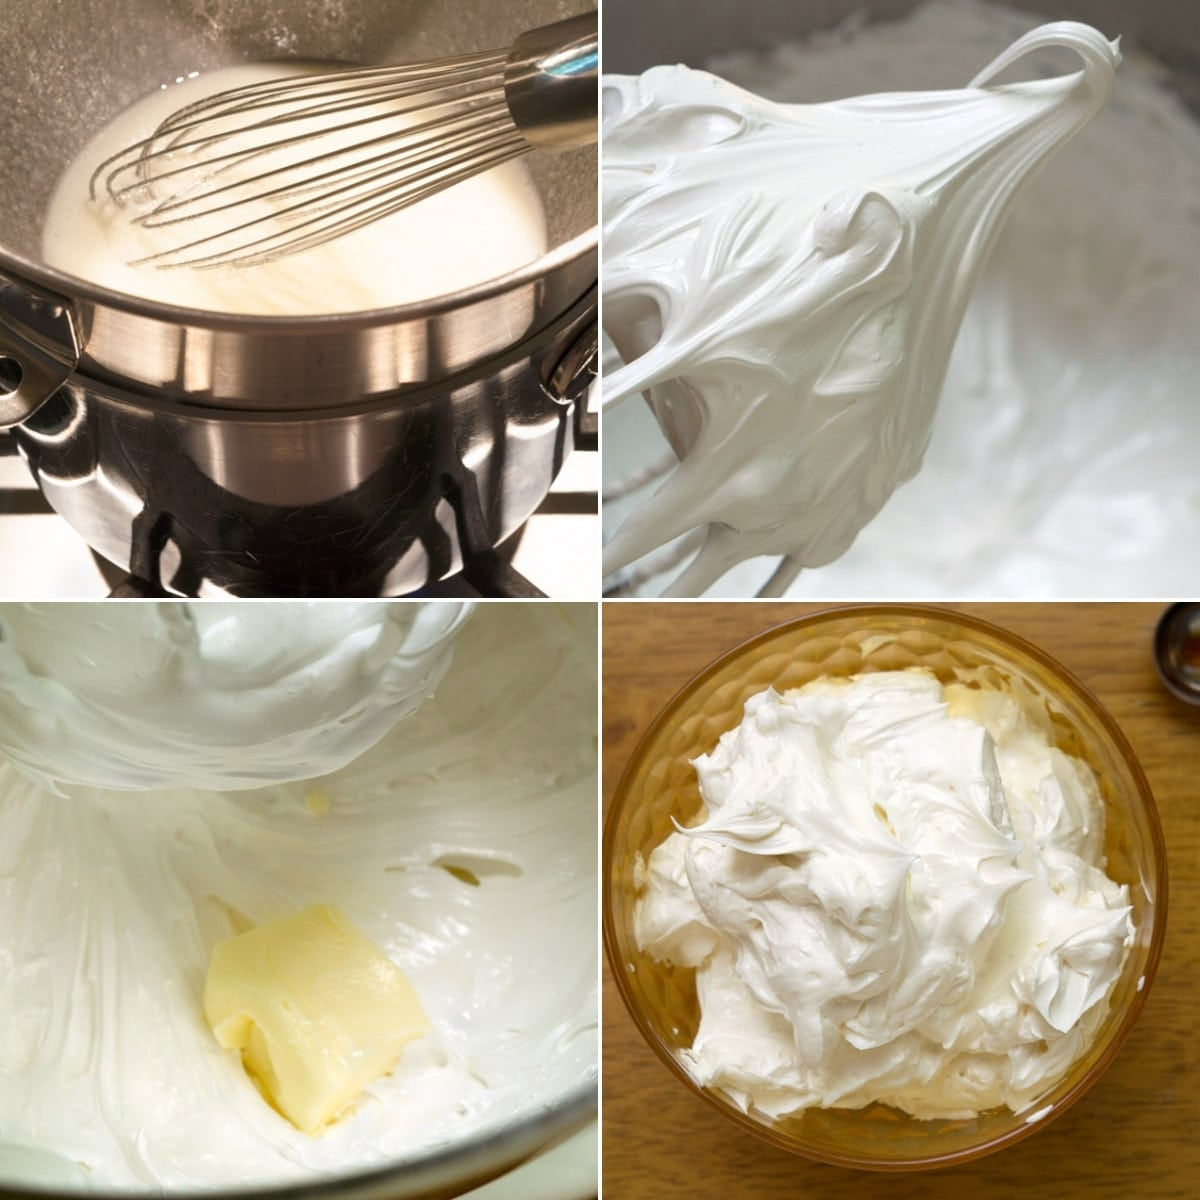 4 photos showing the process of making swiss meringue buttercream